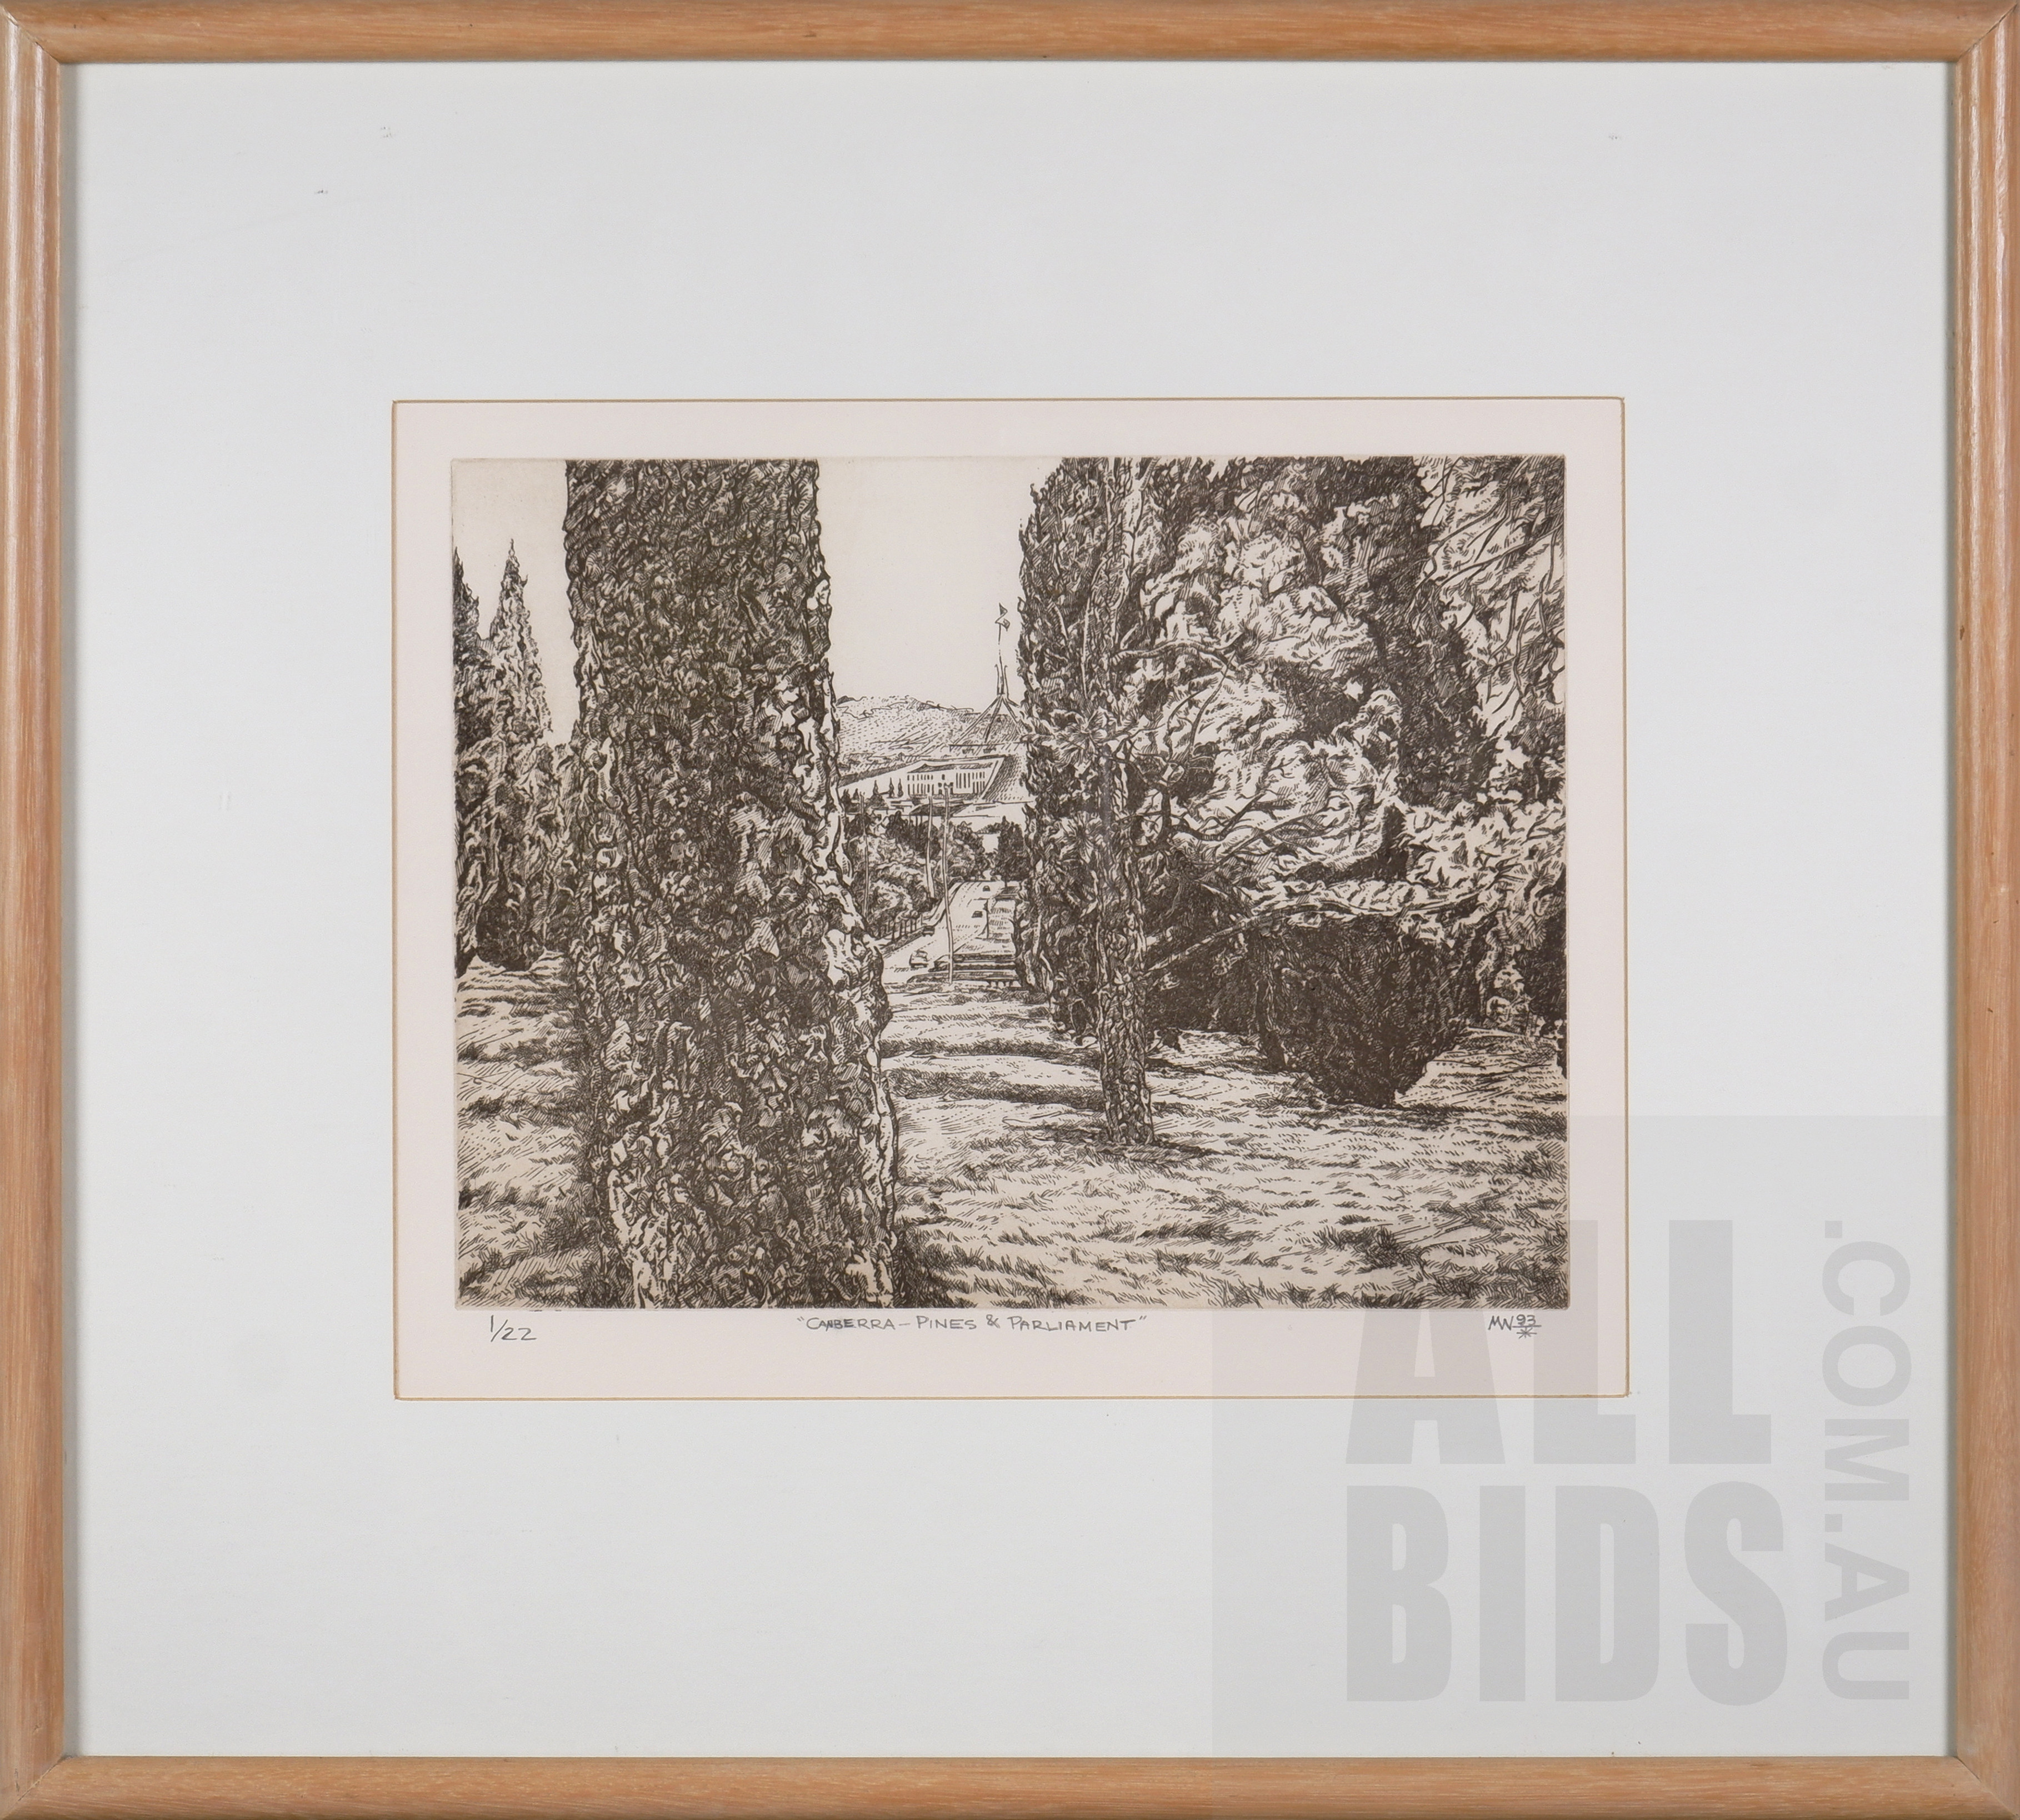 'Michael Winters (born 1943), Canberra - Pines and Parliament 1993, Etching, 24.5 x 31.5 cm (image size)'